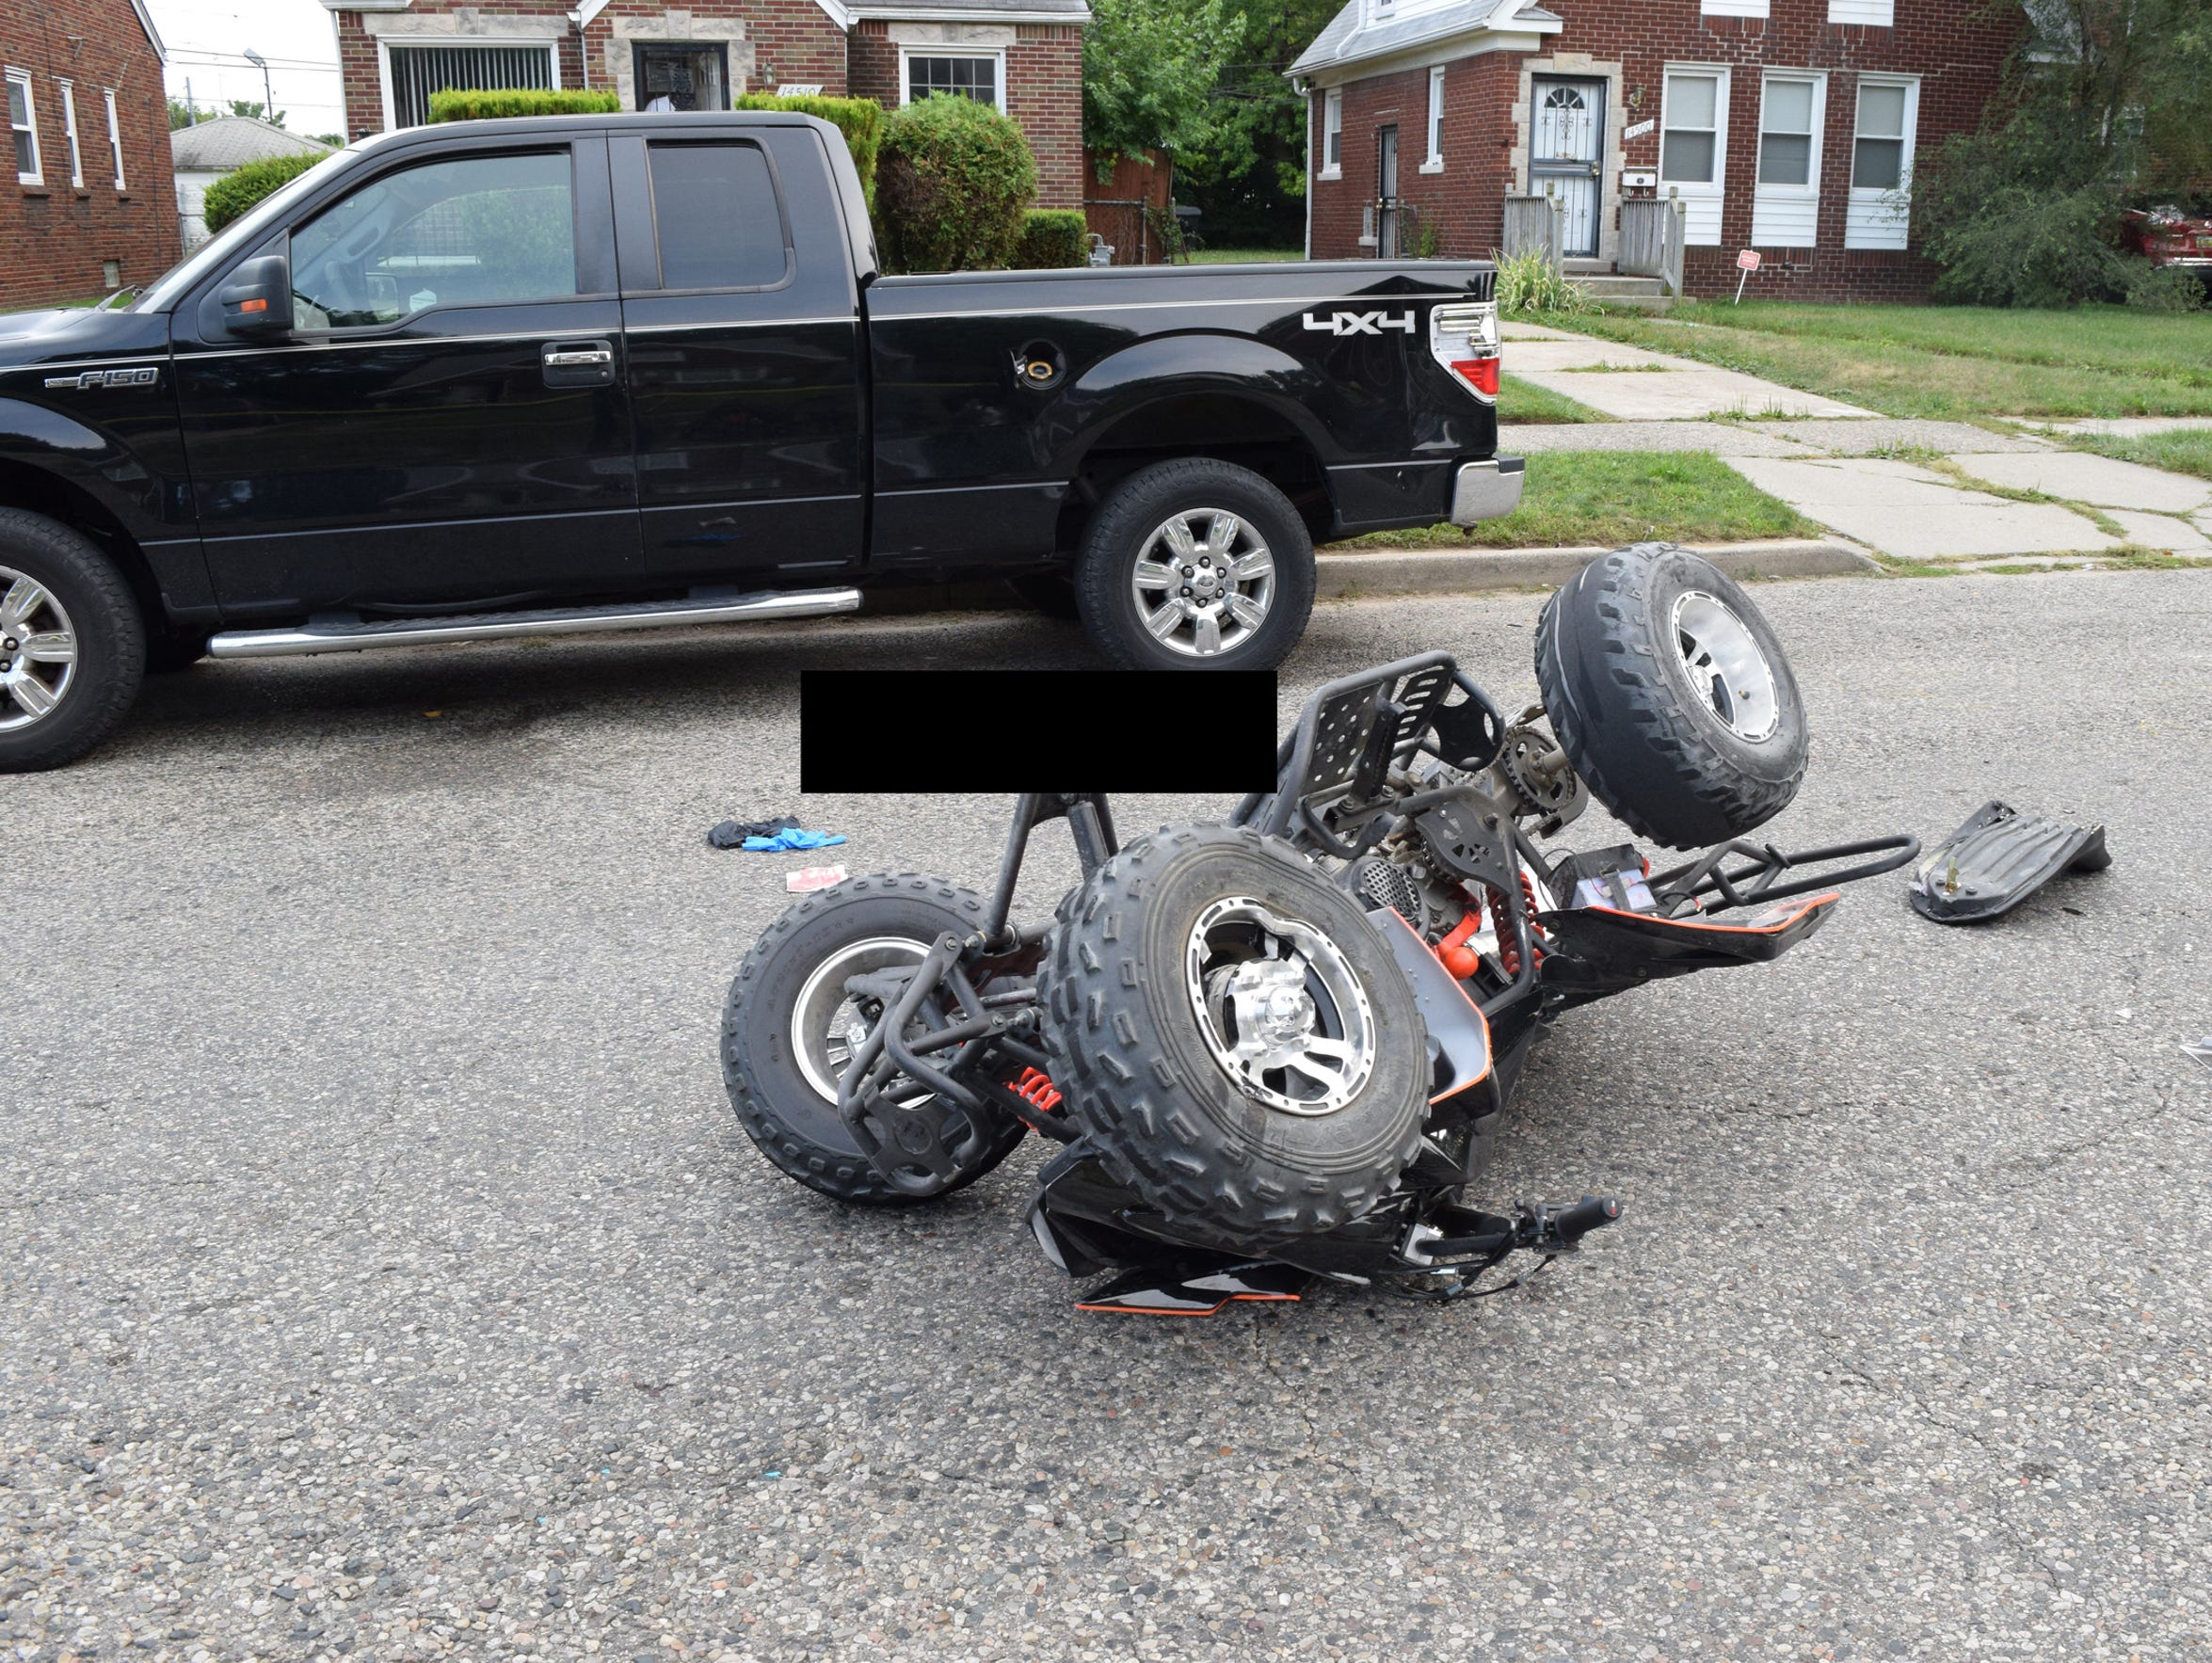 An ATV driven by Damon Grimes crashed into the back